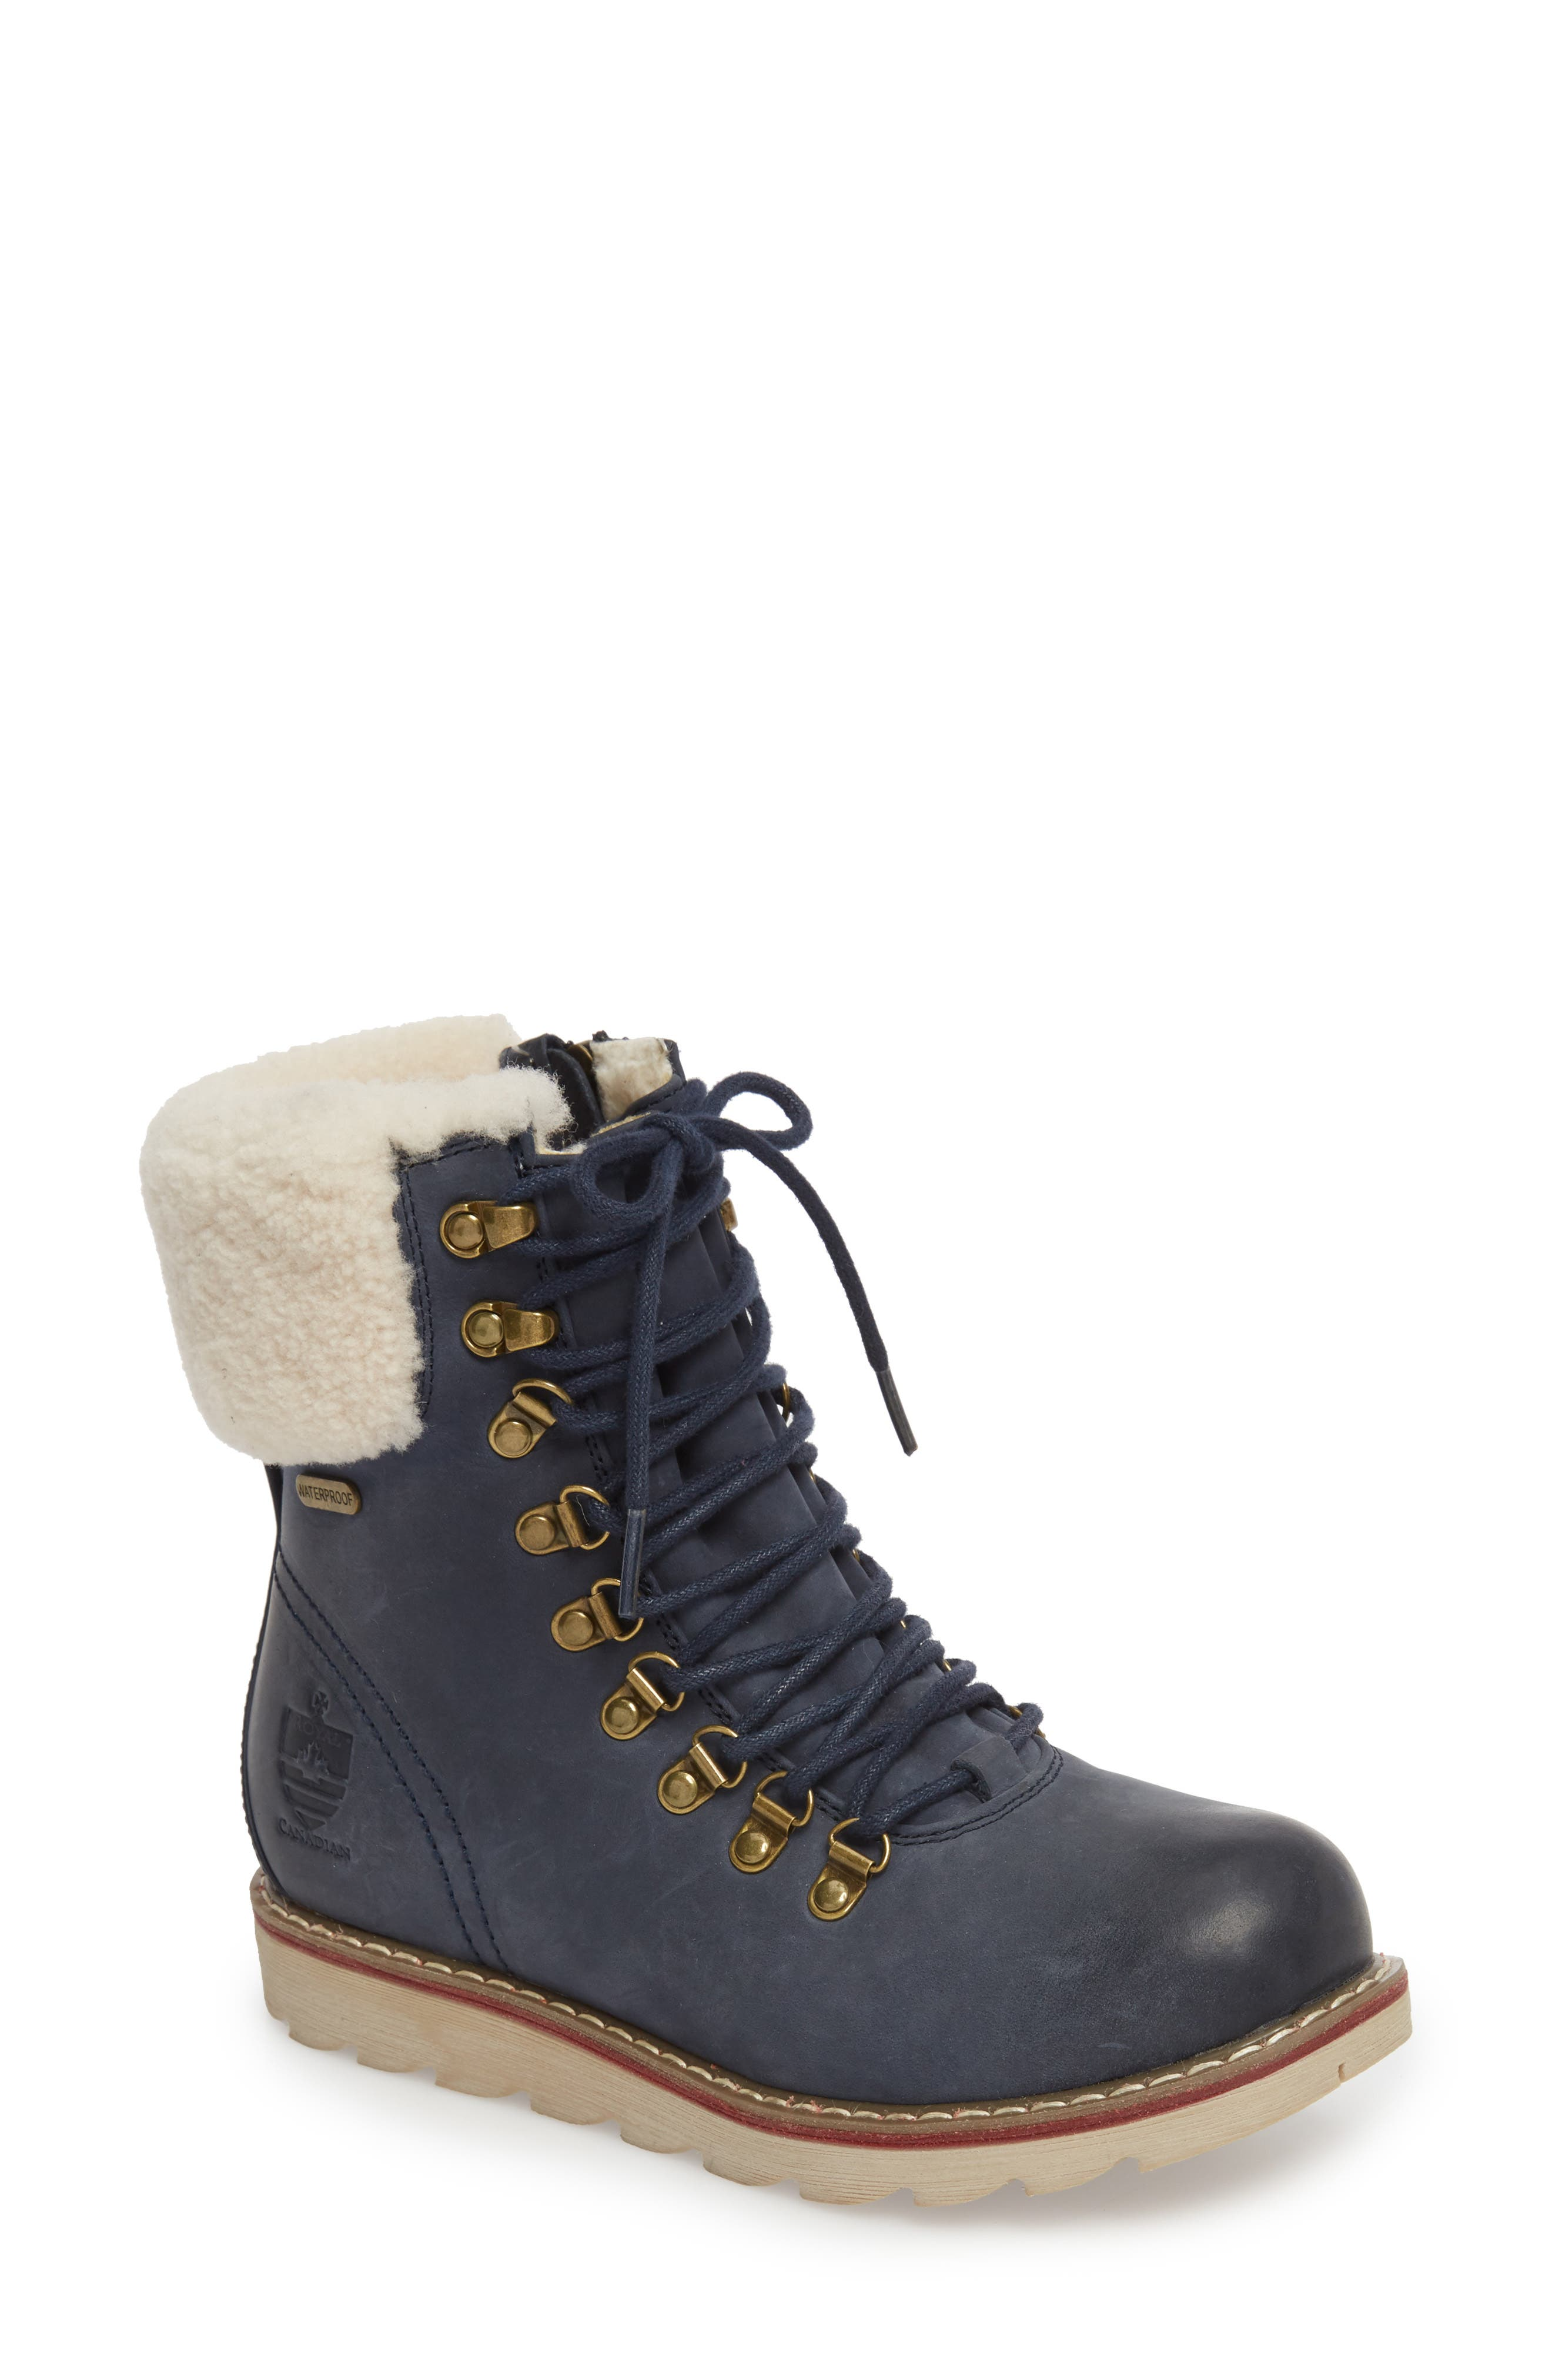 Lethbridge Waterproof Snow Boot with Genuine Shearling Cuff,                             Main thumbnail 4, color,